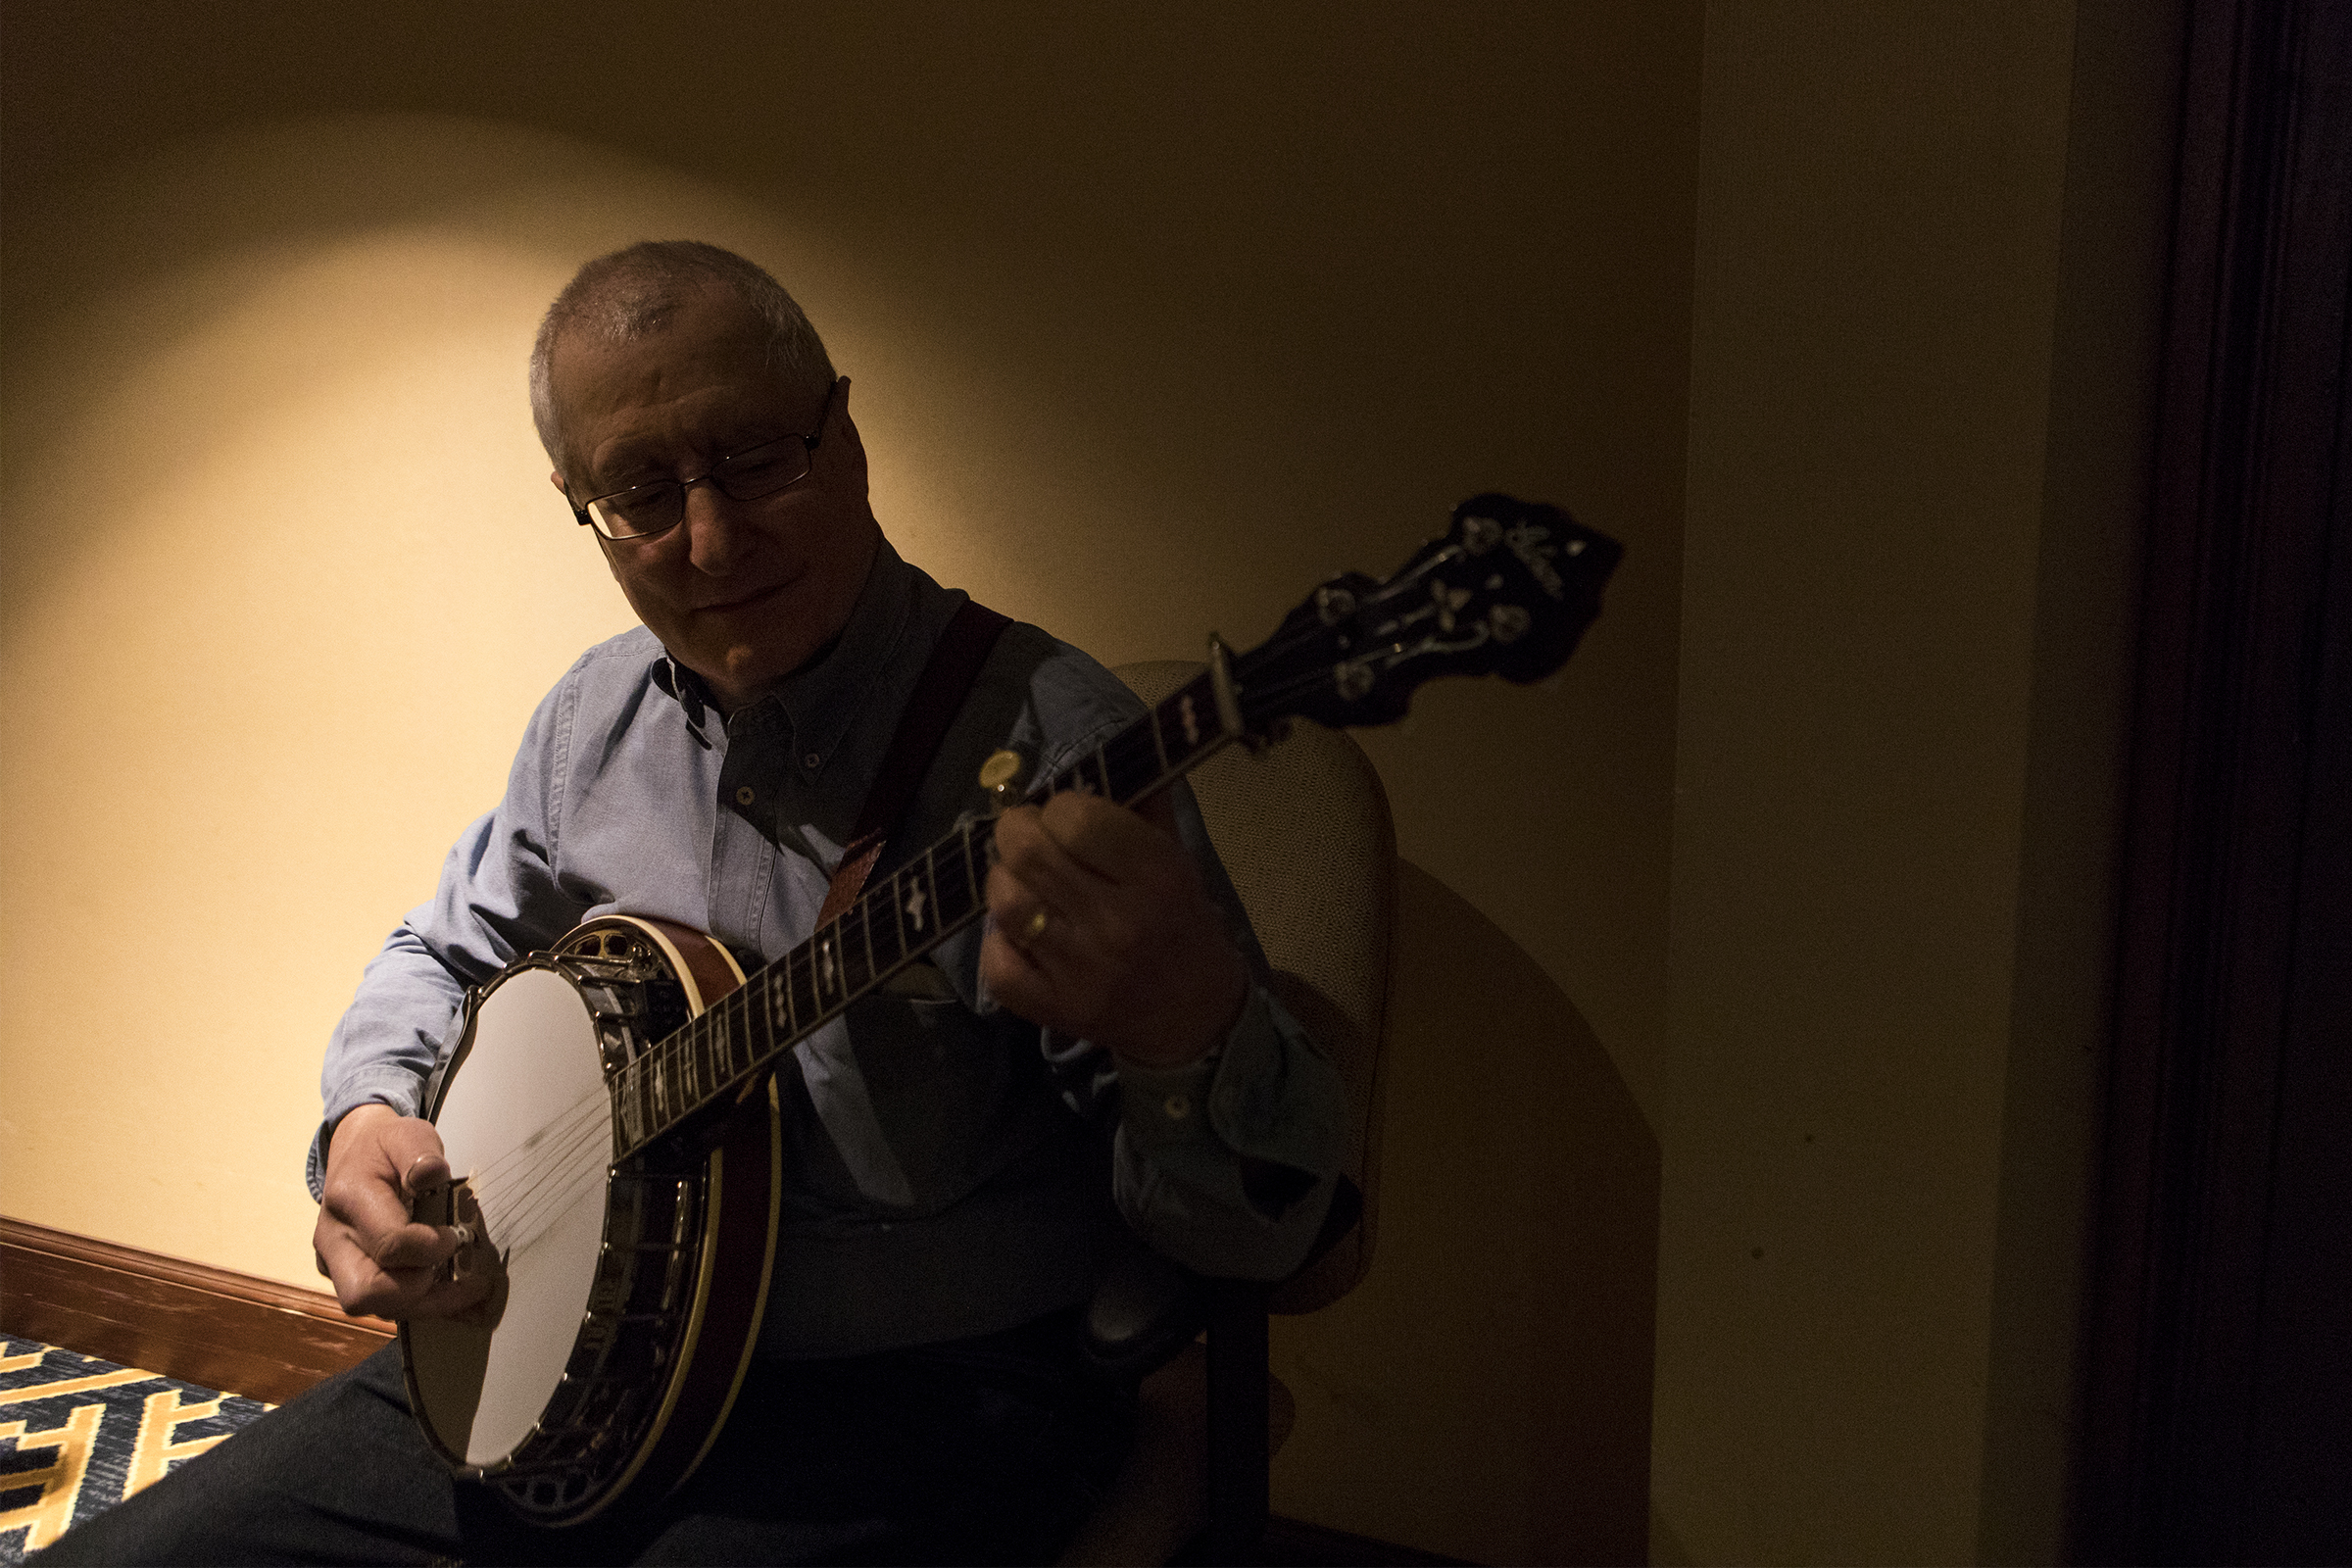 David Hollender, professor at Berklee College of Music, plays the banjo in the hallway during the annual Joe Val Bluegrass Festival at the Sheraton in Framingham on Feb. 16, 2019.